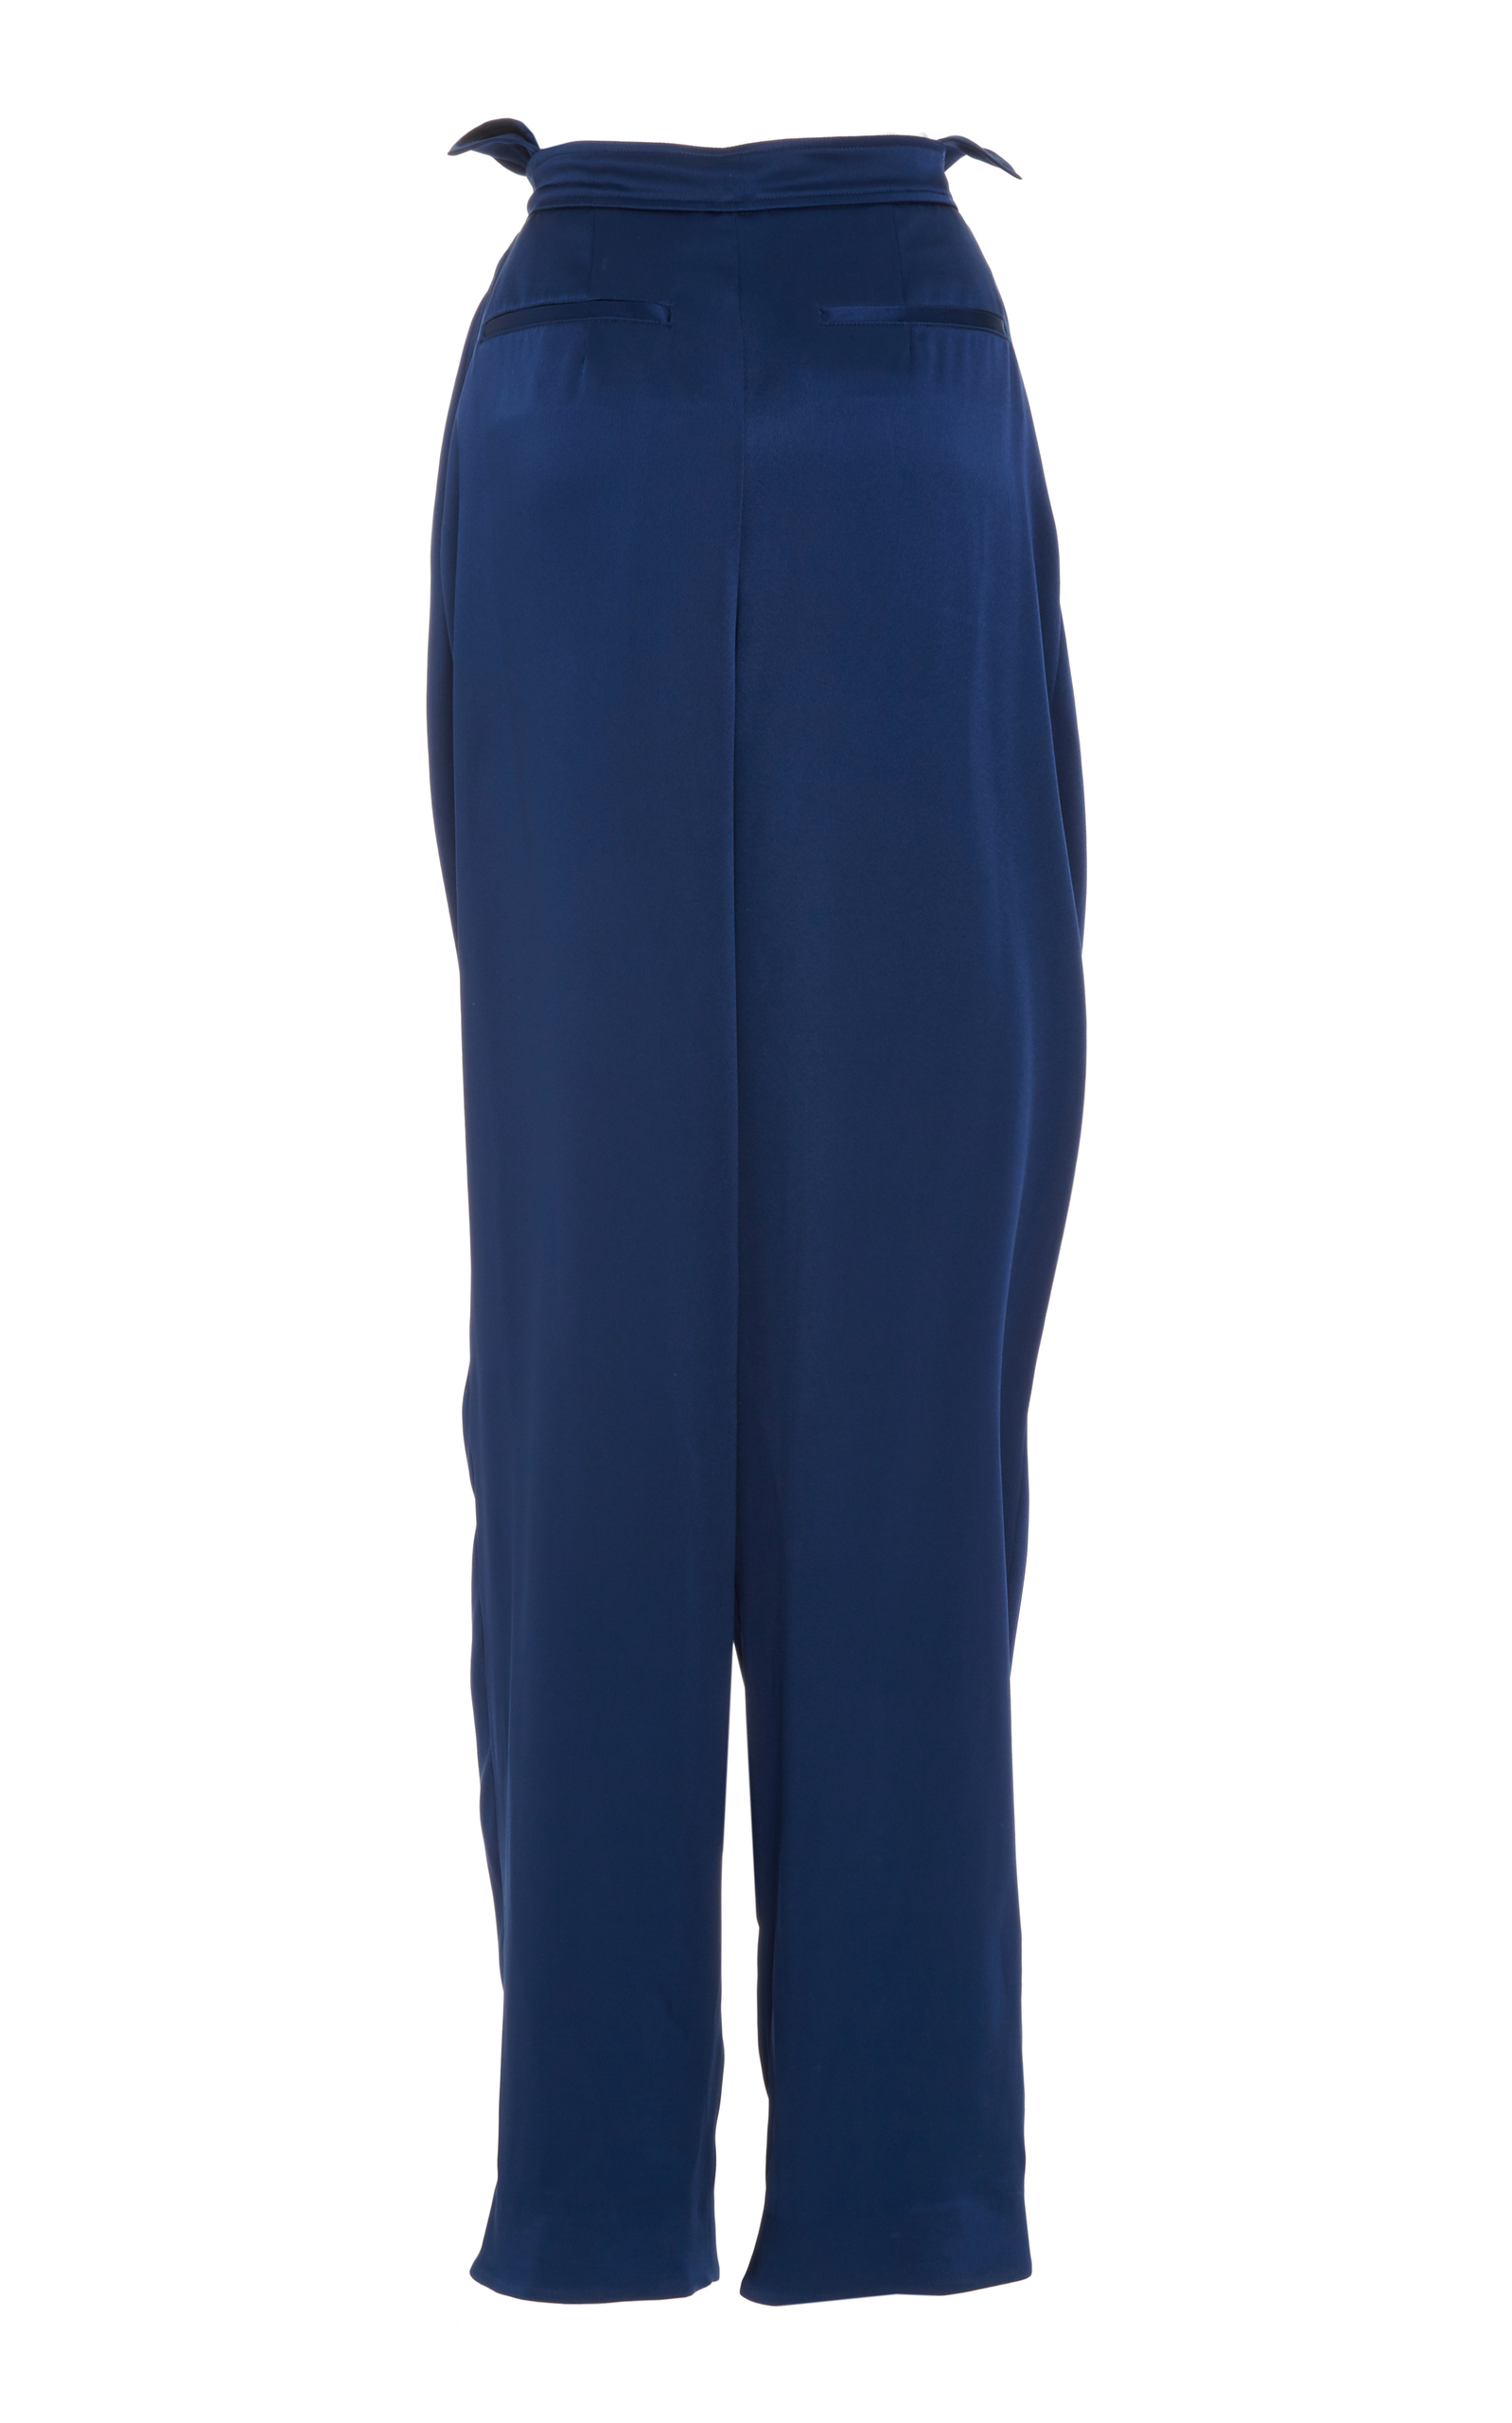 Fake Paperbag Trouser ADEAM Clearance View Clearance Online Official Site Buy Cheap Original JRvWz